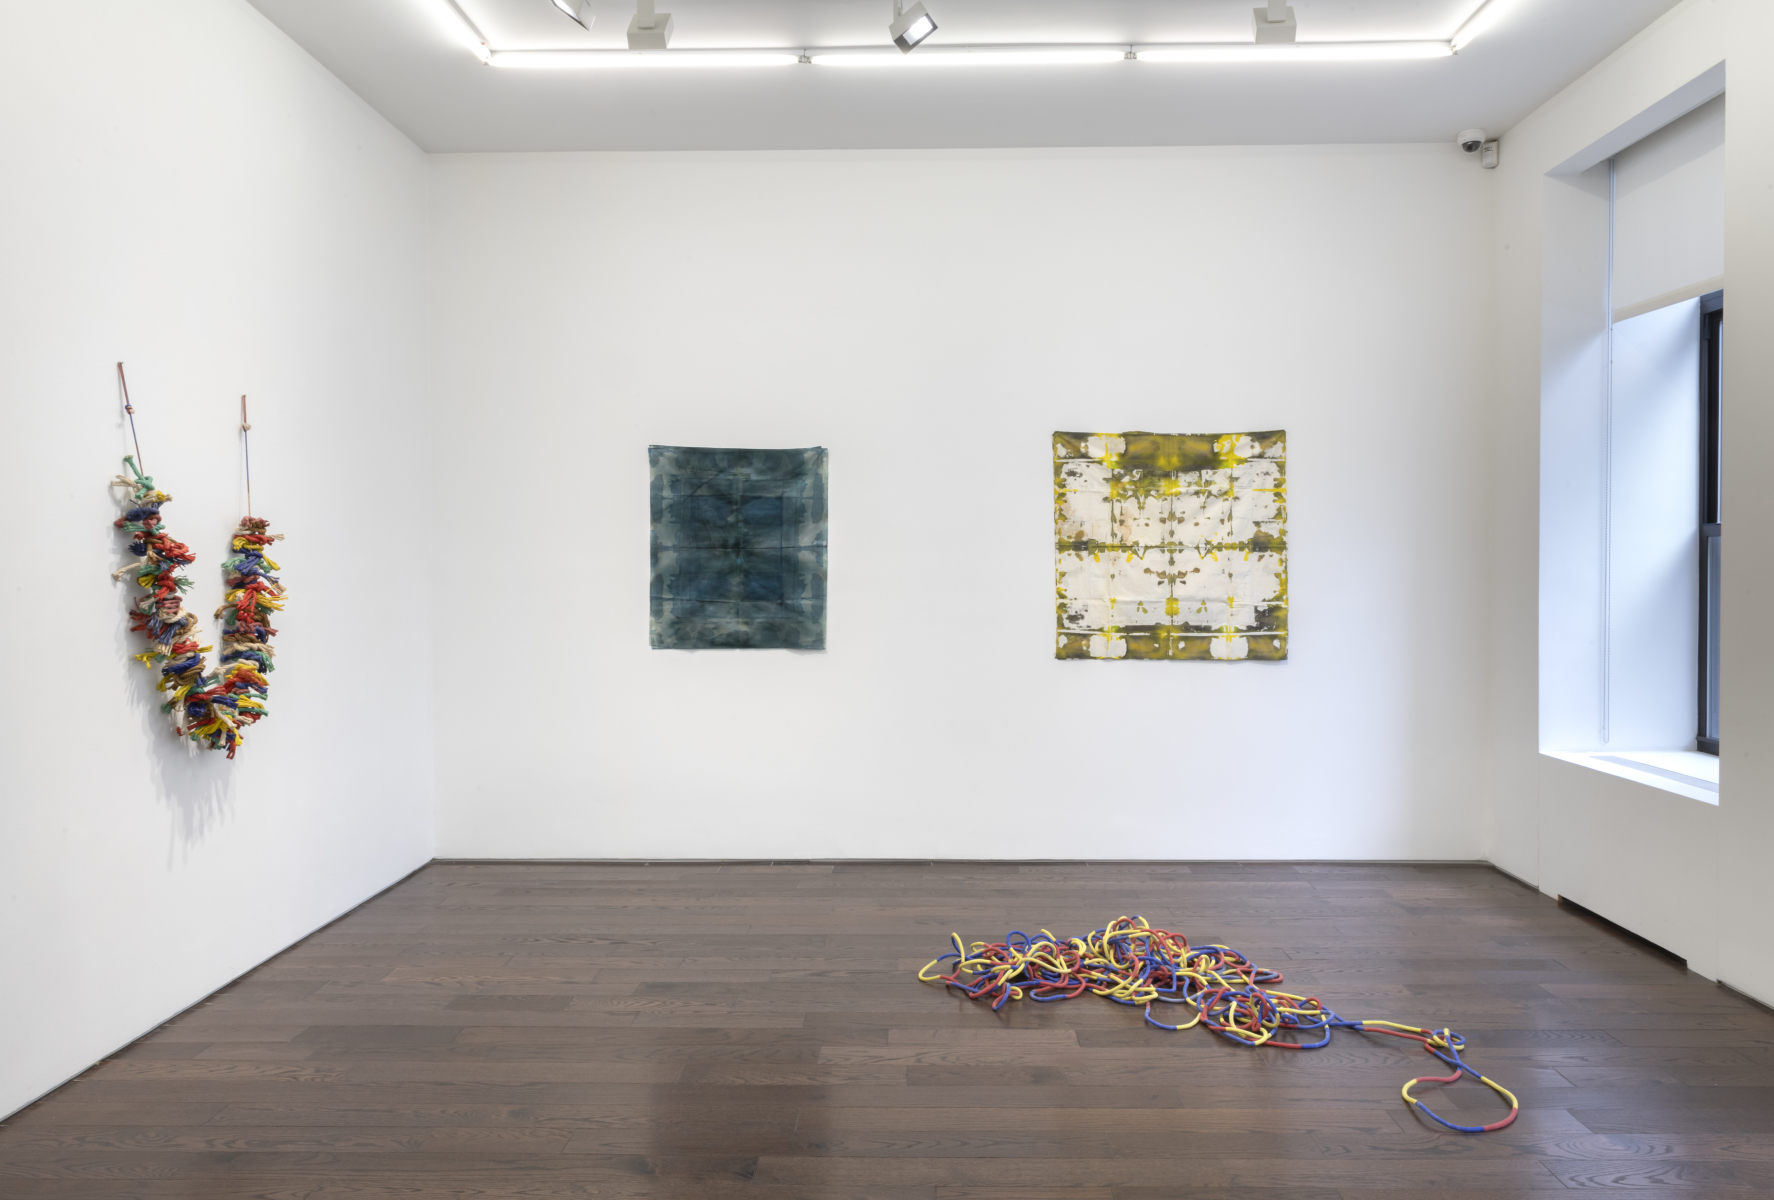 Exhibition View, André Valensi, Oeuvres 1971-1992, C&B New York, 2021 (6)